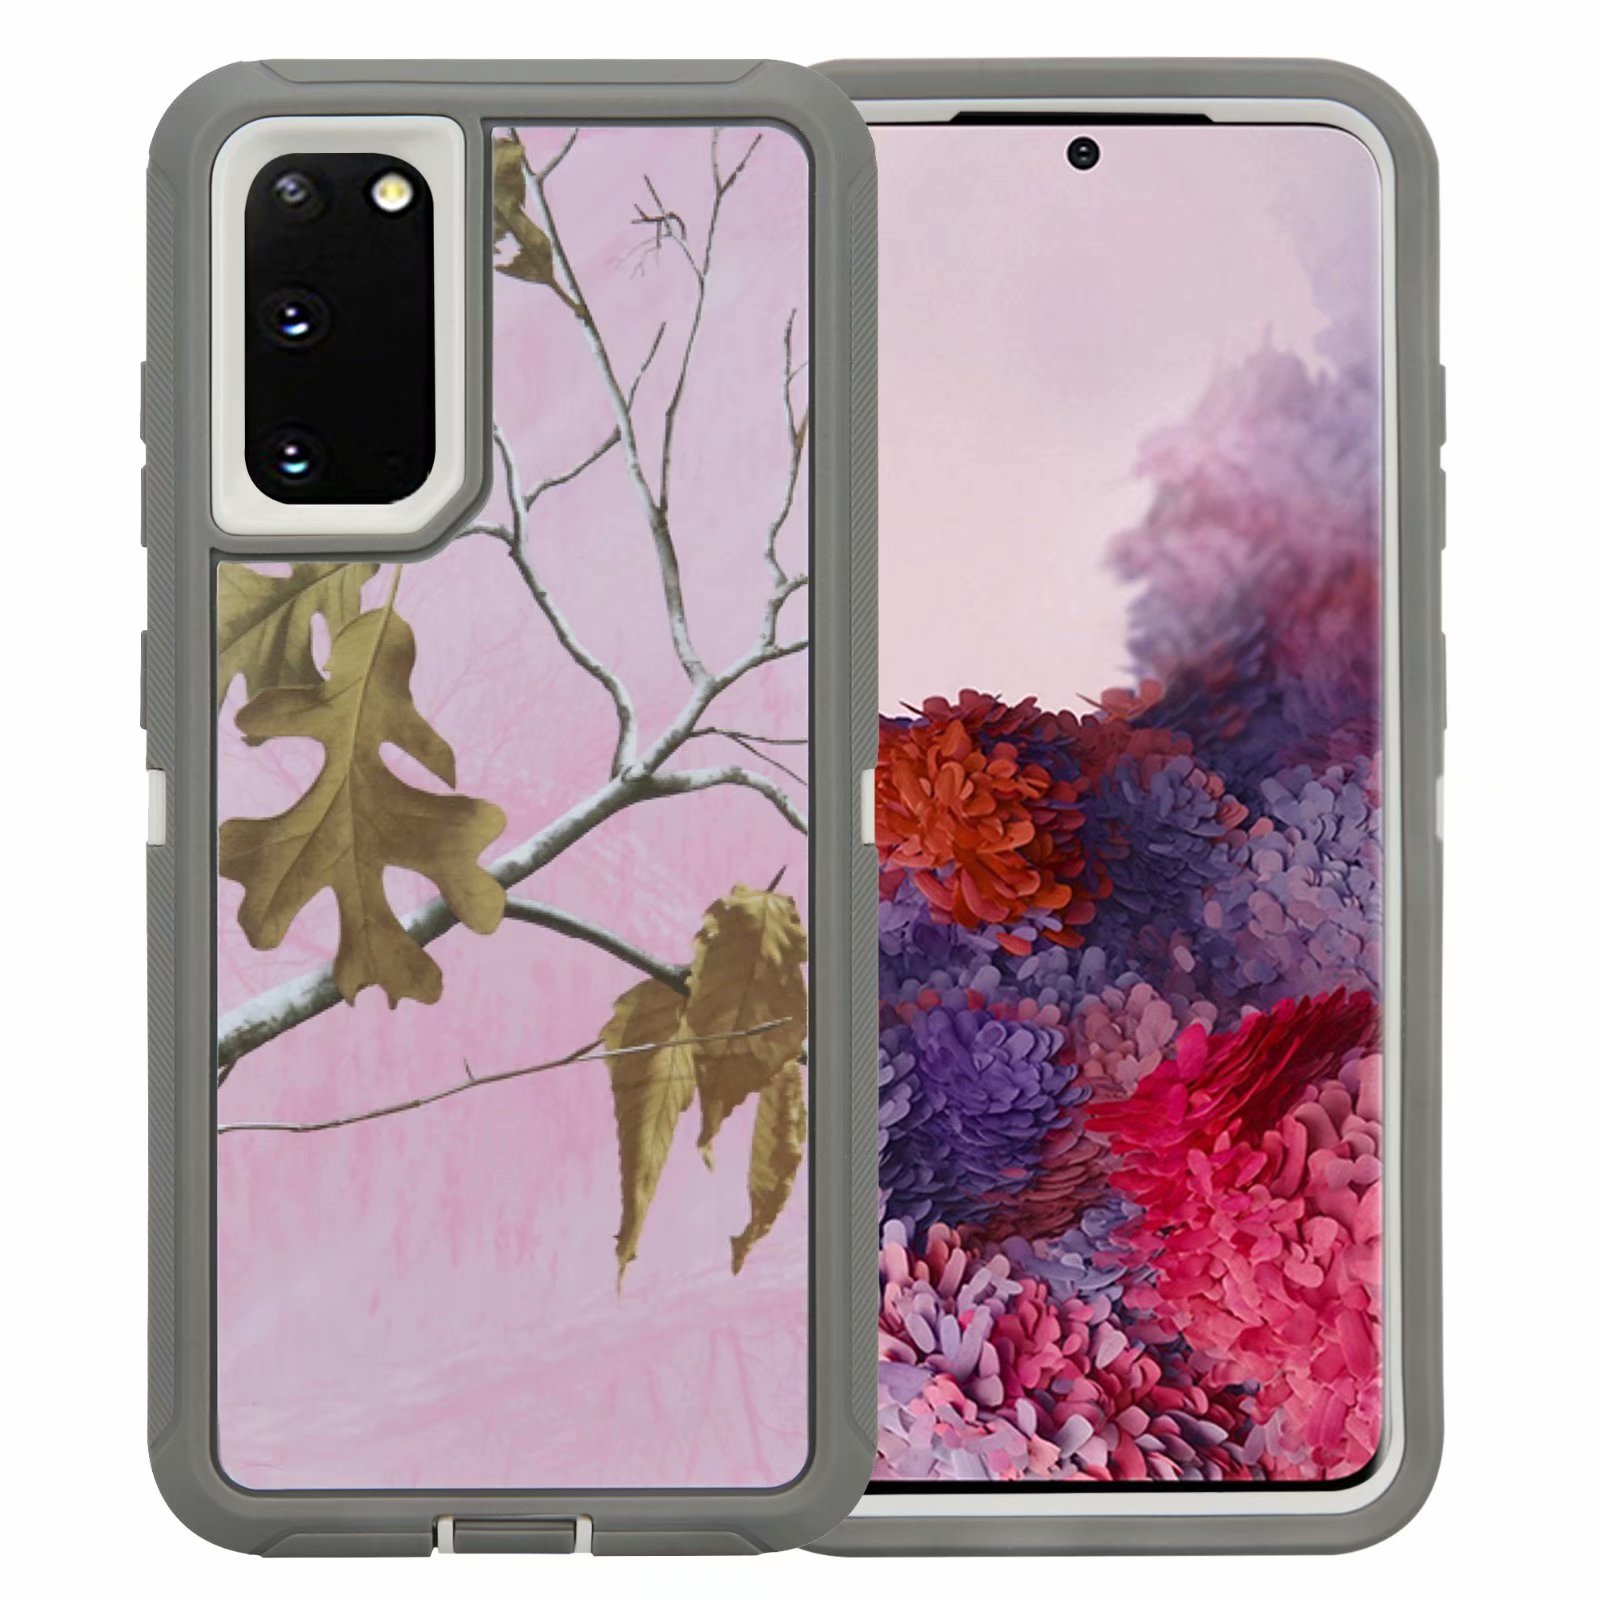 Defend Heavy Duty For SAMSUNG Glaxy S20 Plus-Pink Camo